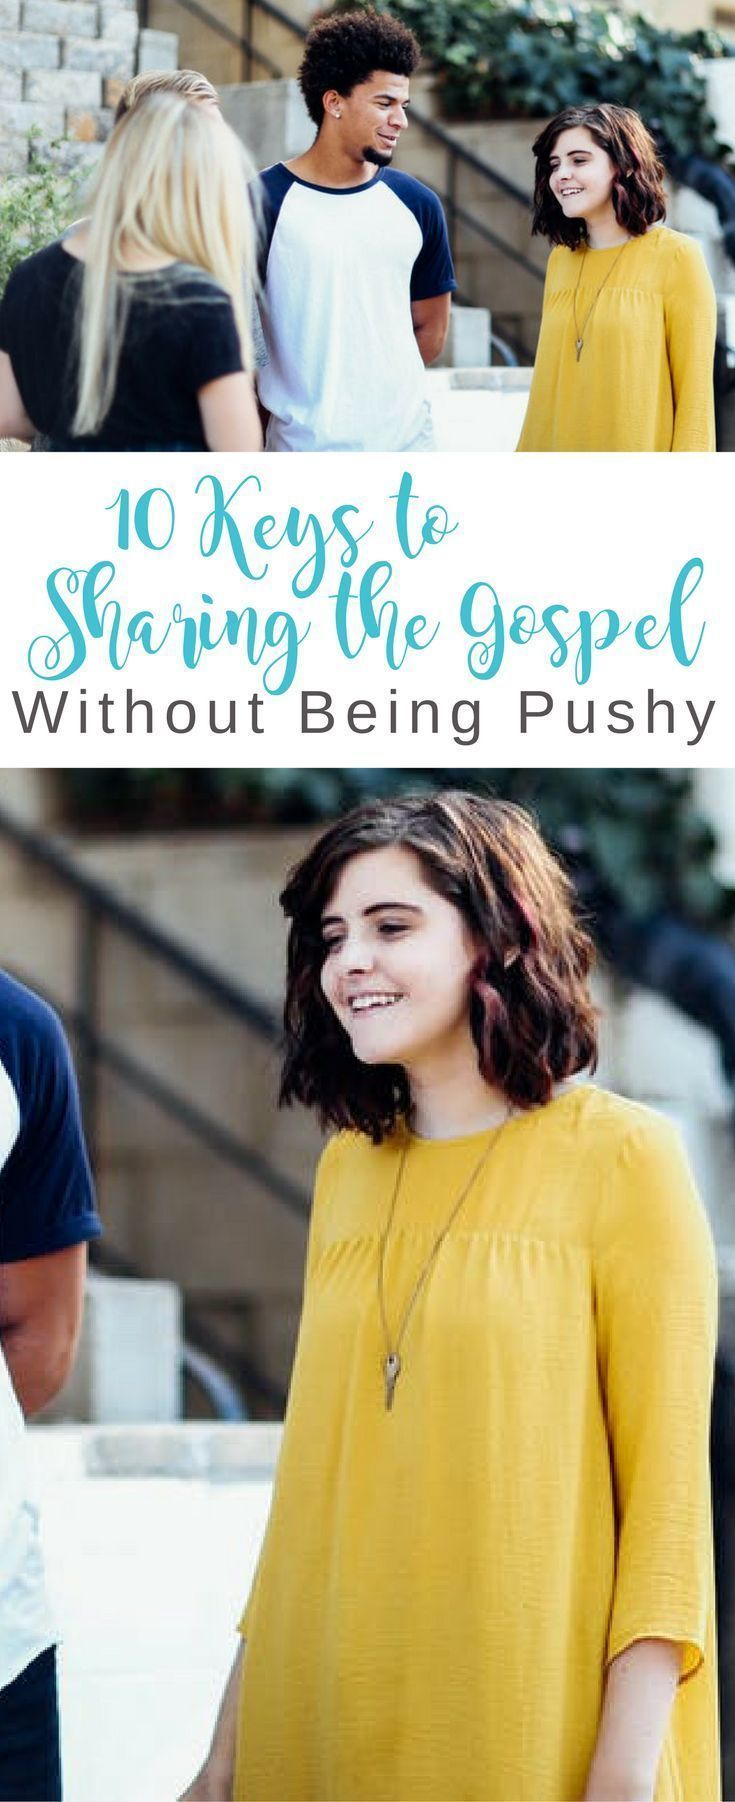 10 Keys to Sharing the Gospel Without Being Pushy | Evangelism, Discipleship | Mini-Tip Monday | Scripture Confident Living